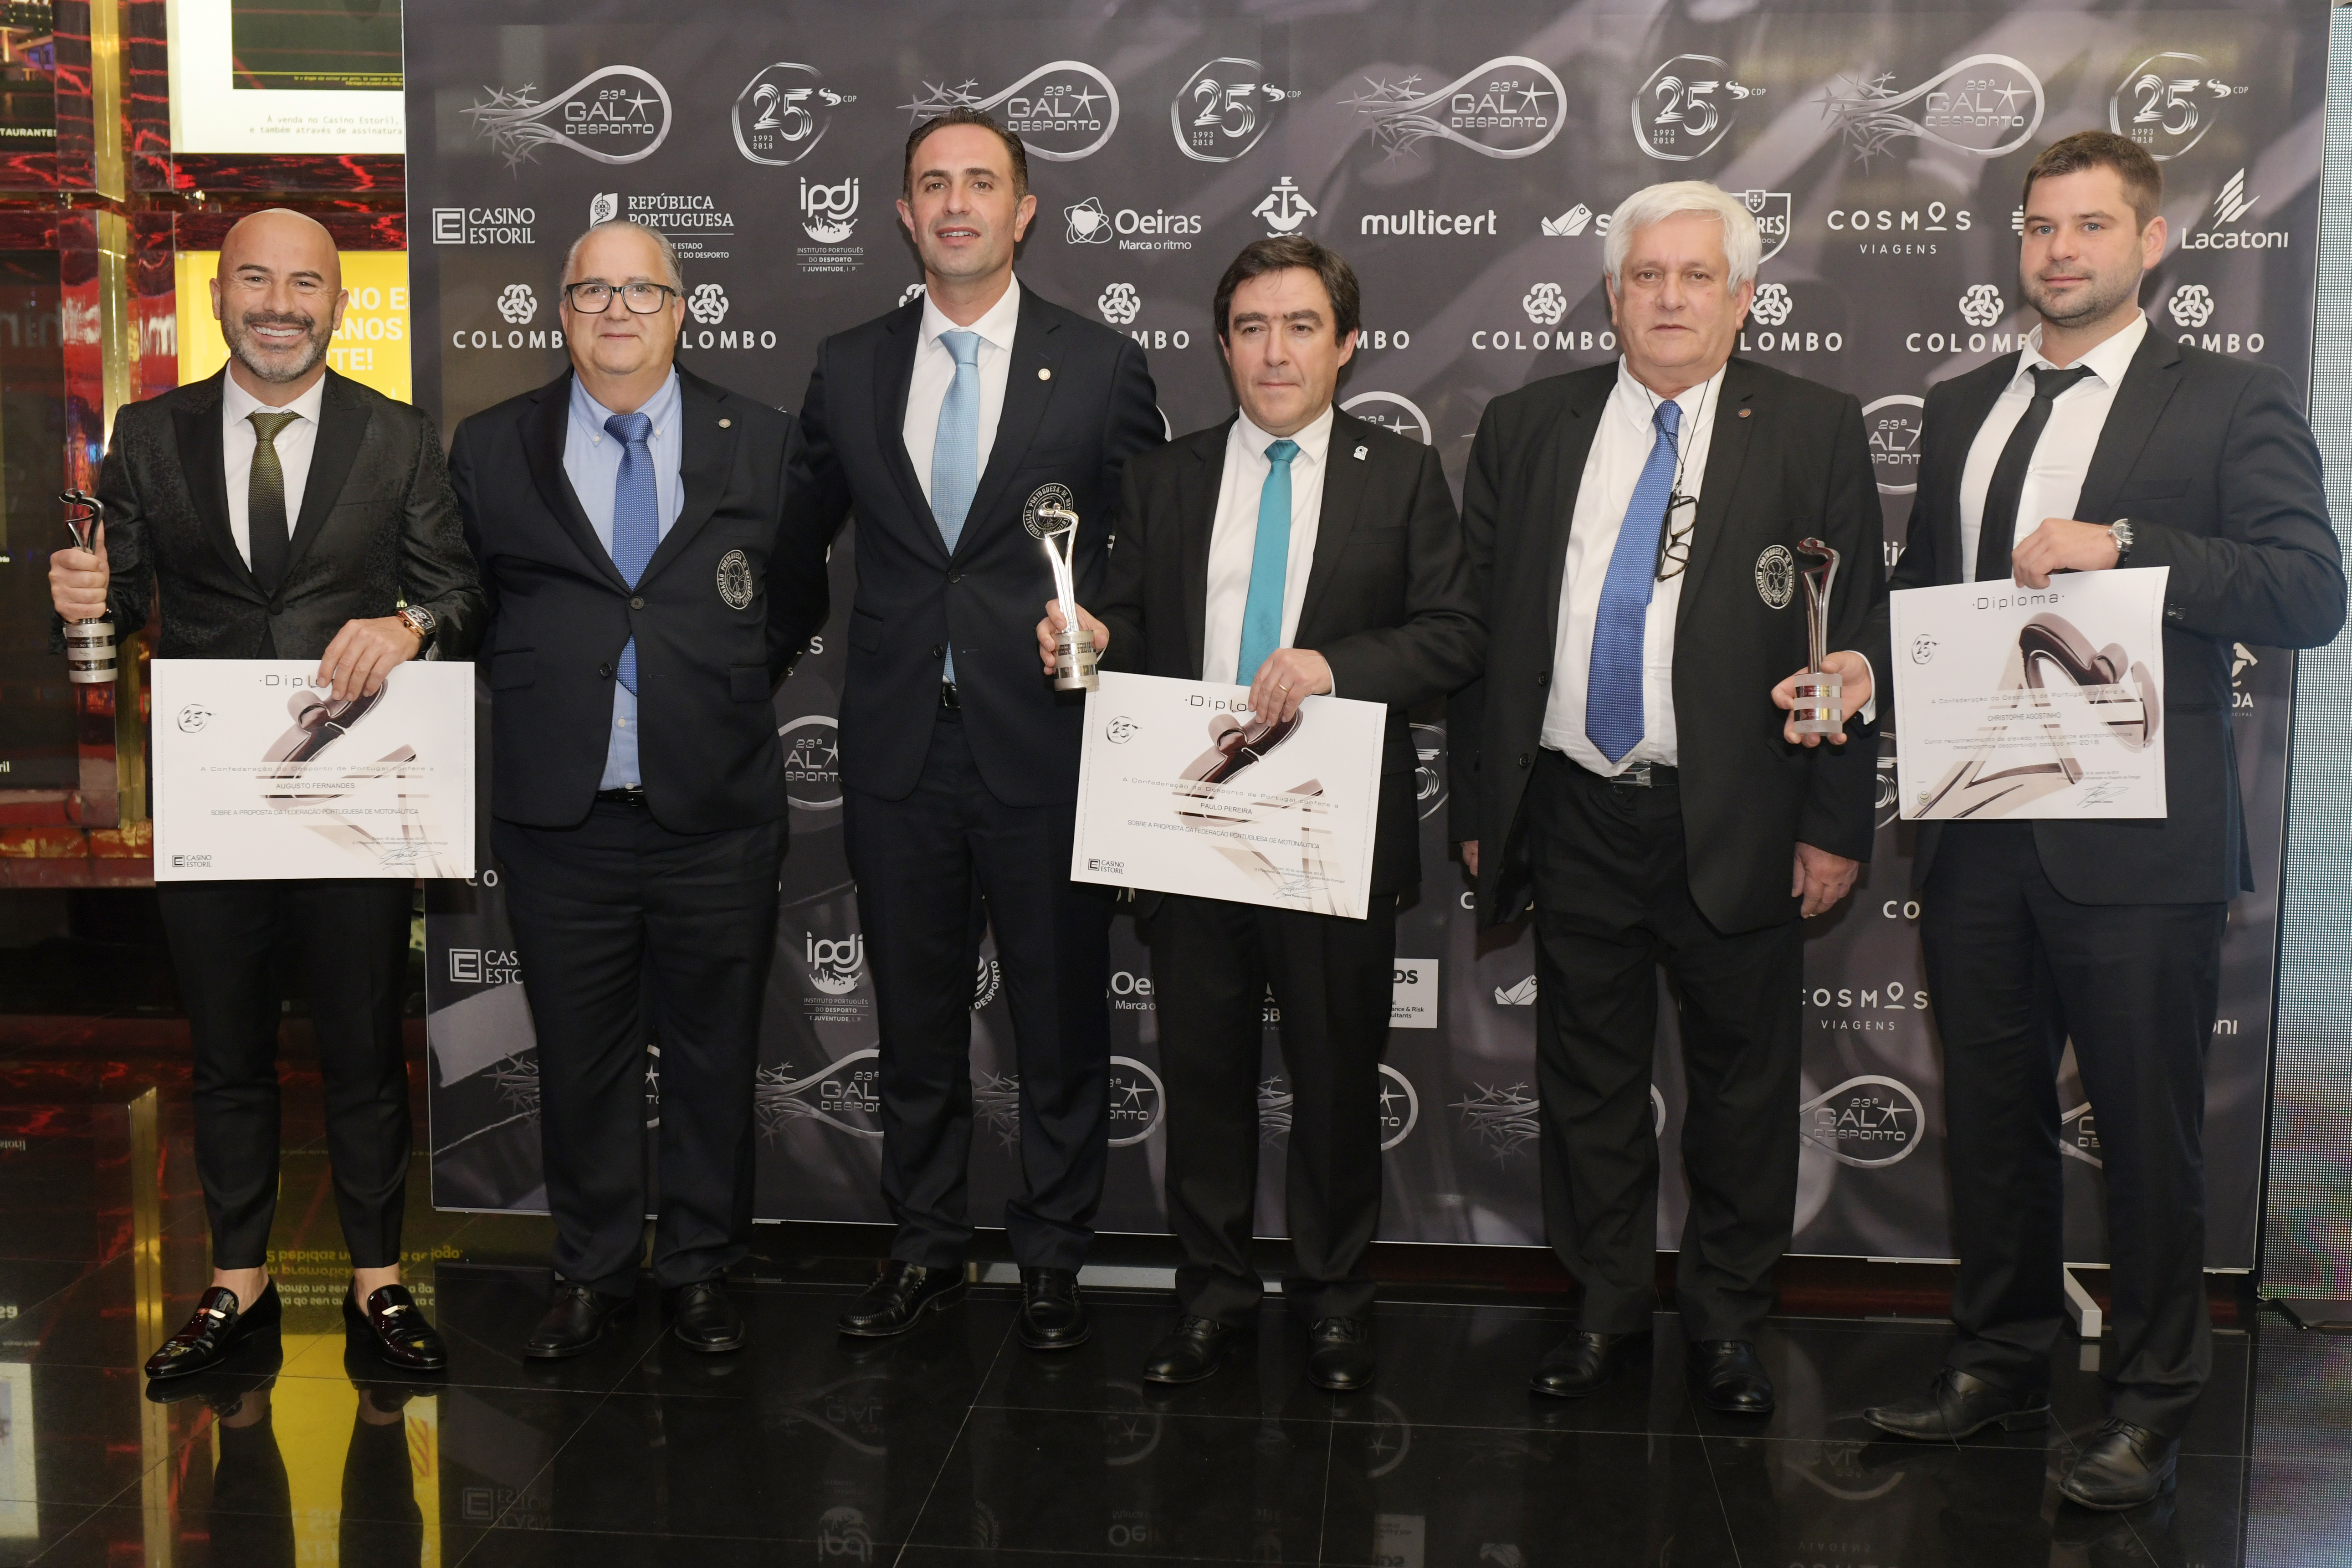 Gala do Desporto 2019 – Casono do Estoril